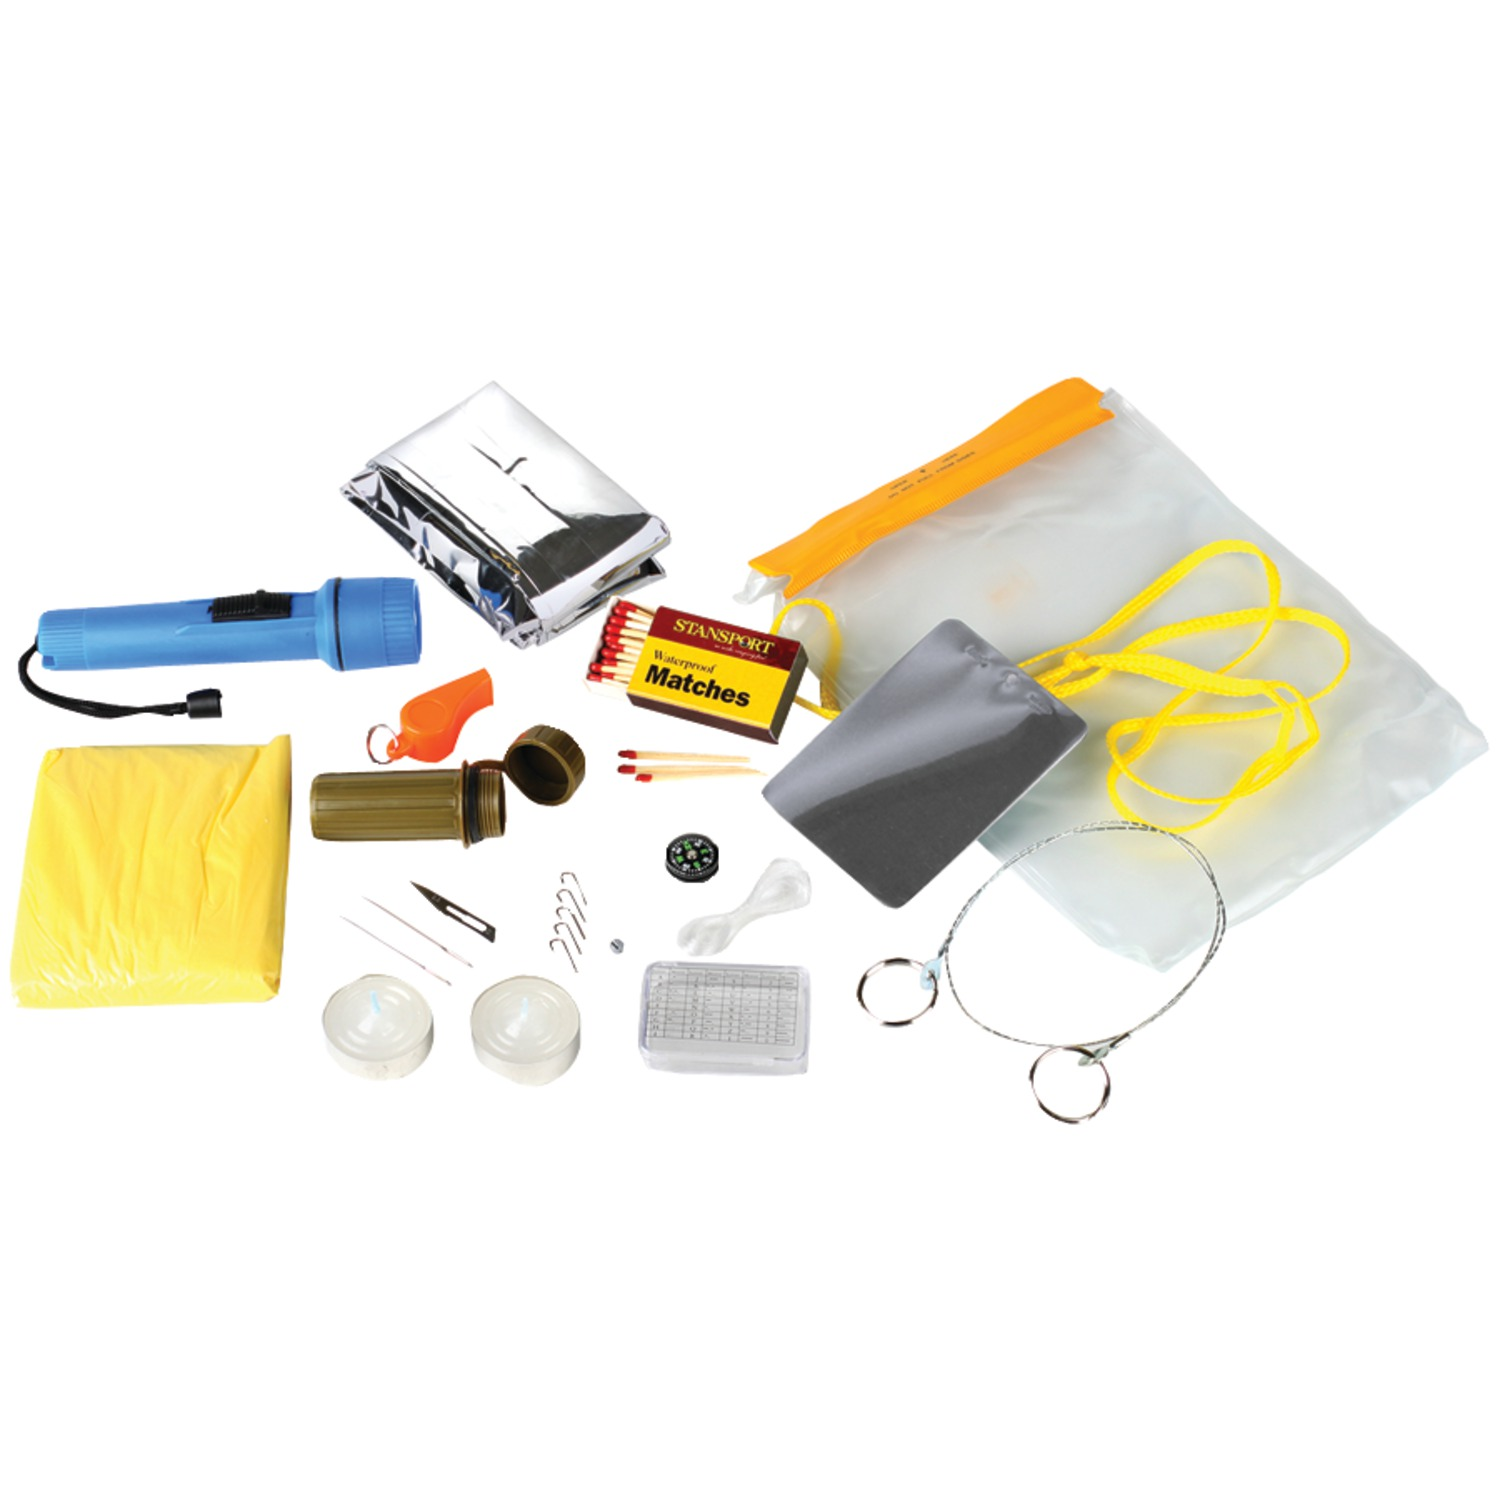 Stansport Survival Kit by Stansport